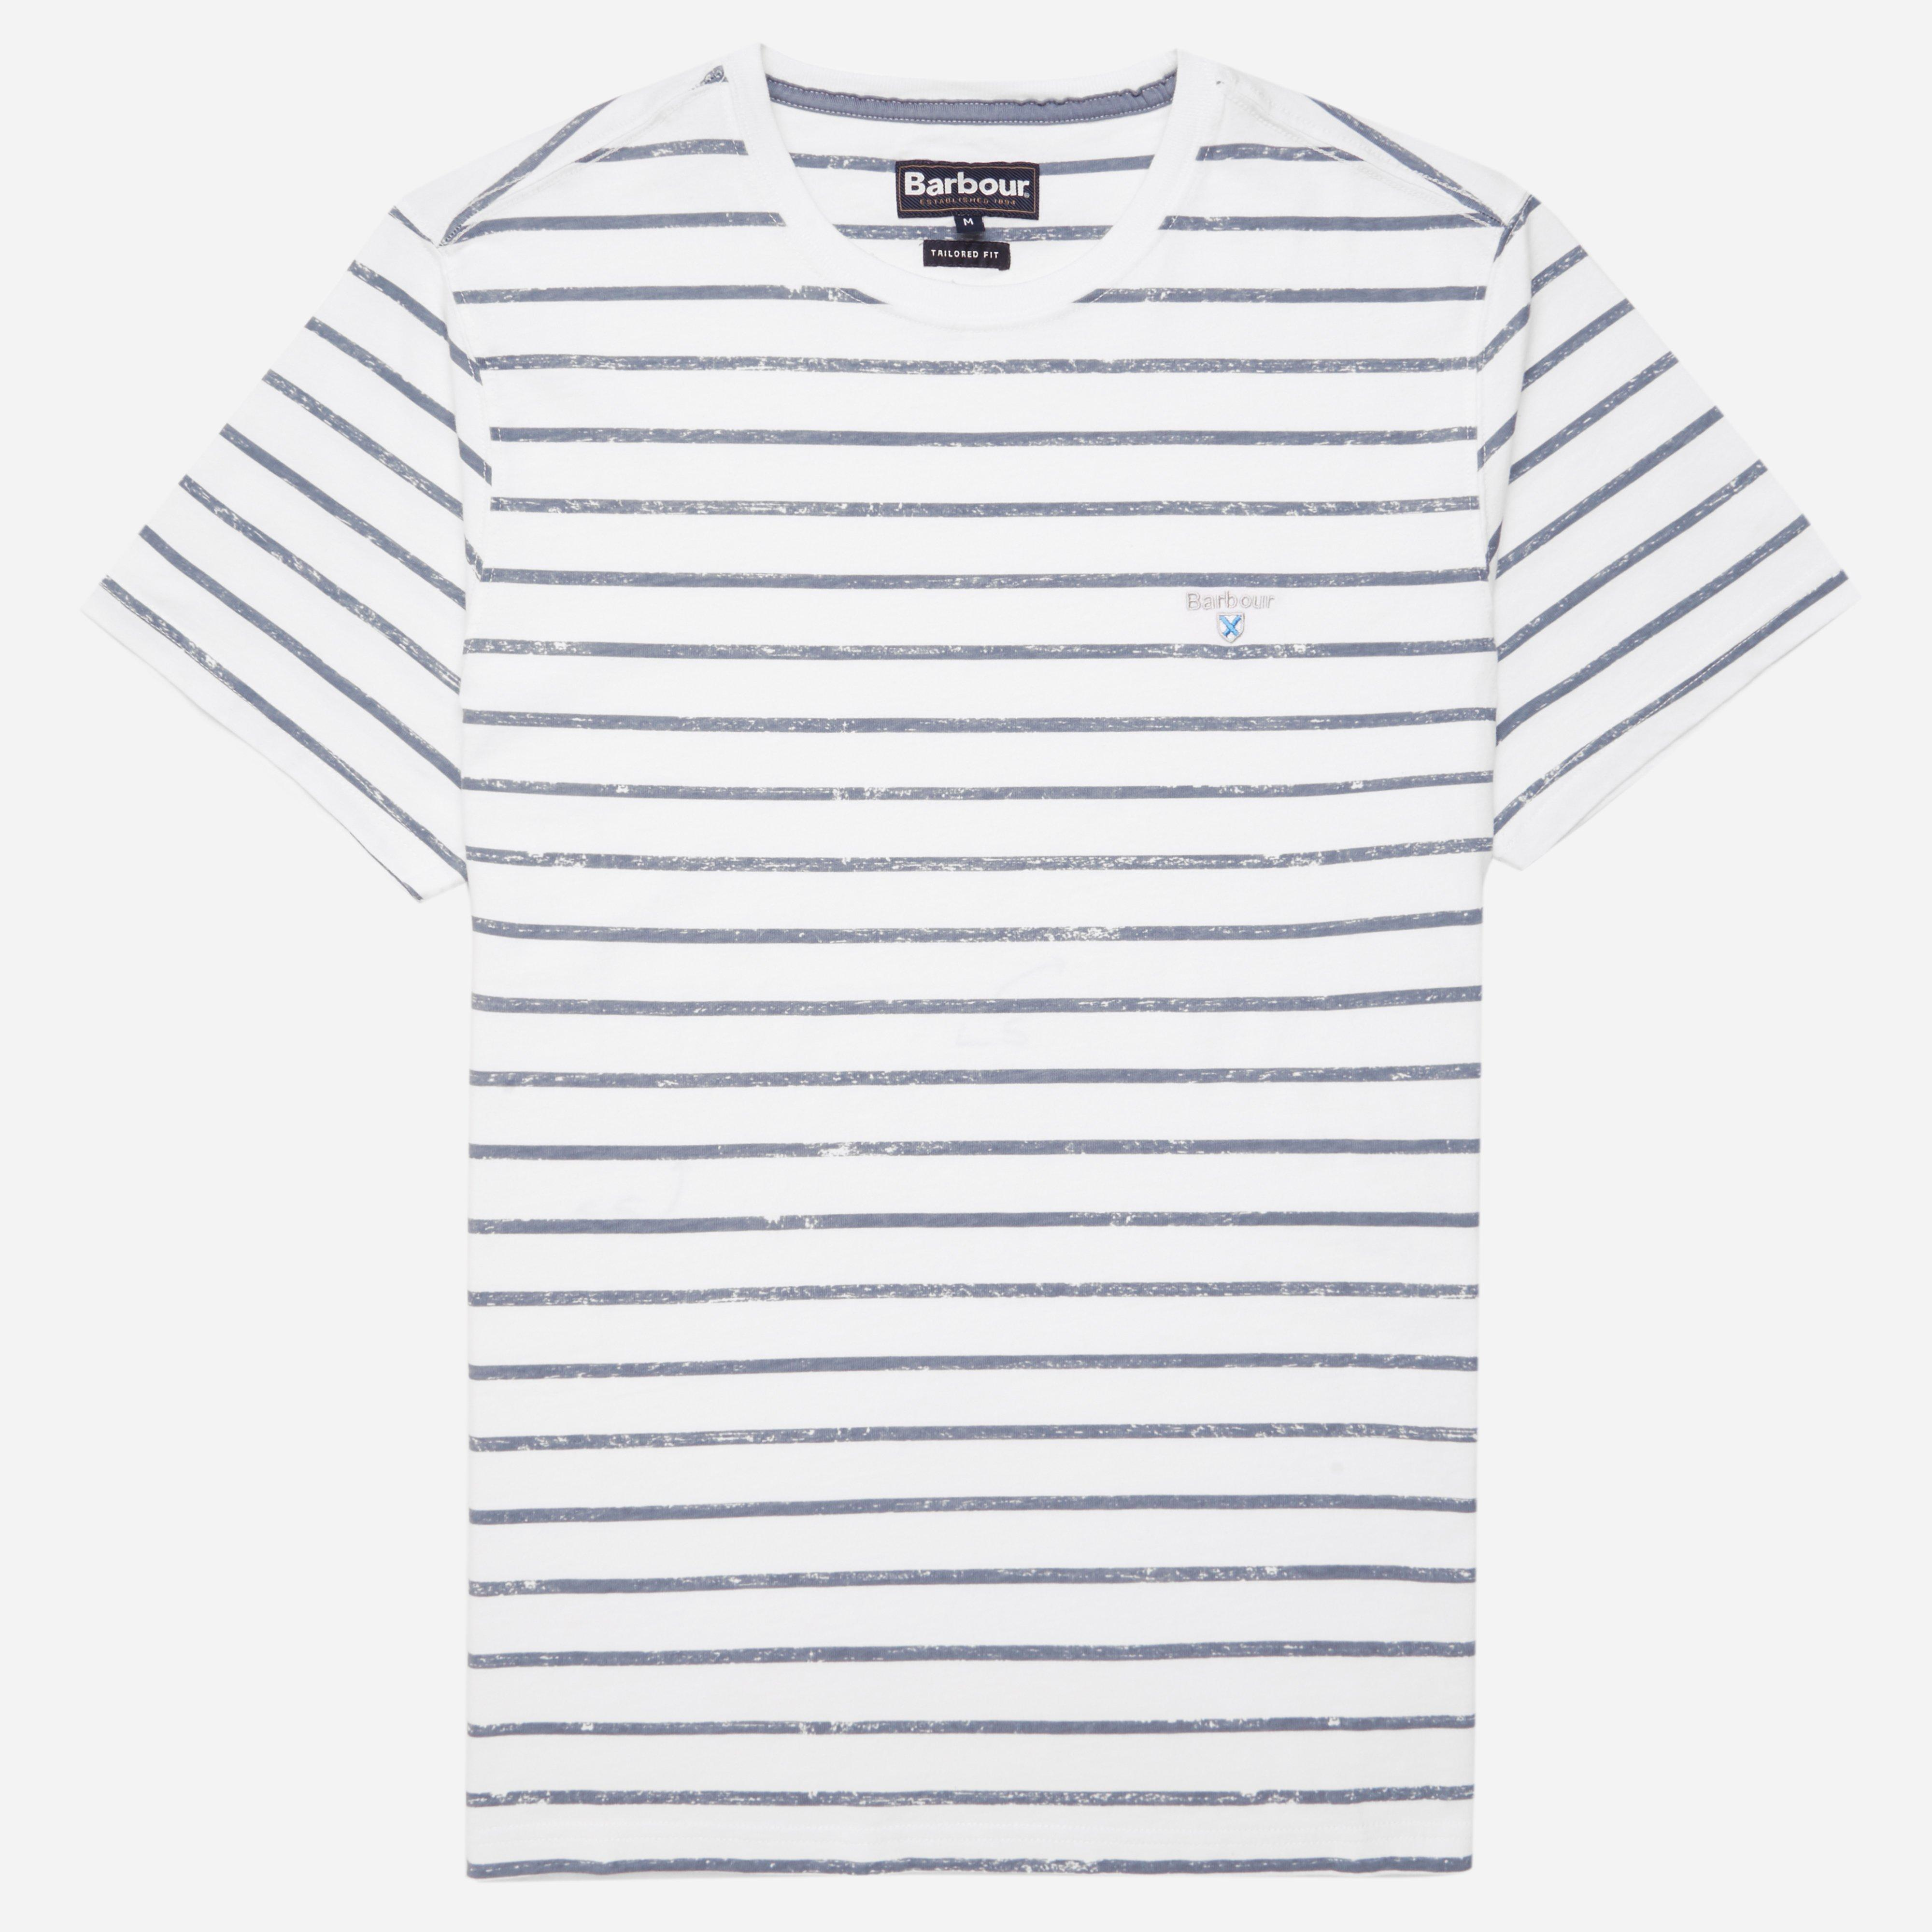 Barbour Dalewood Stripe Tee